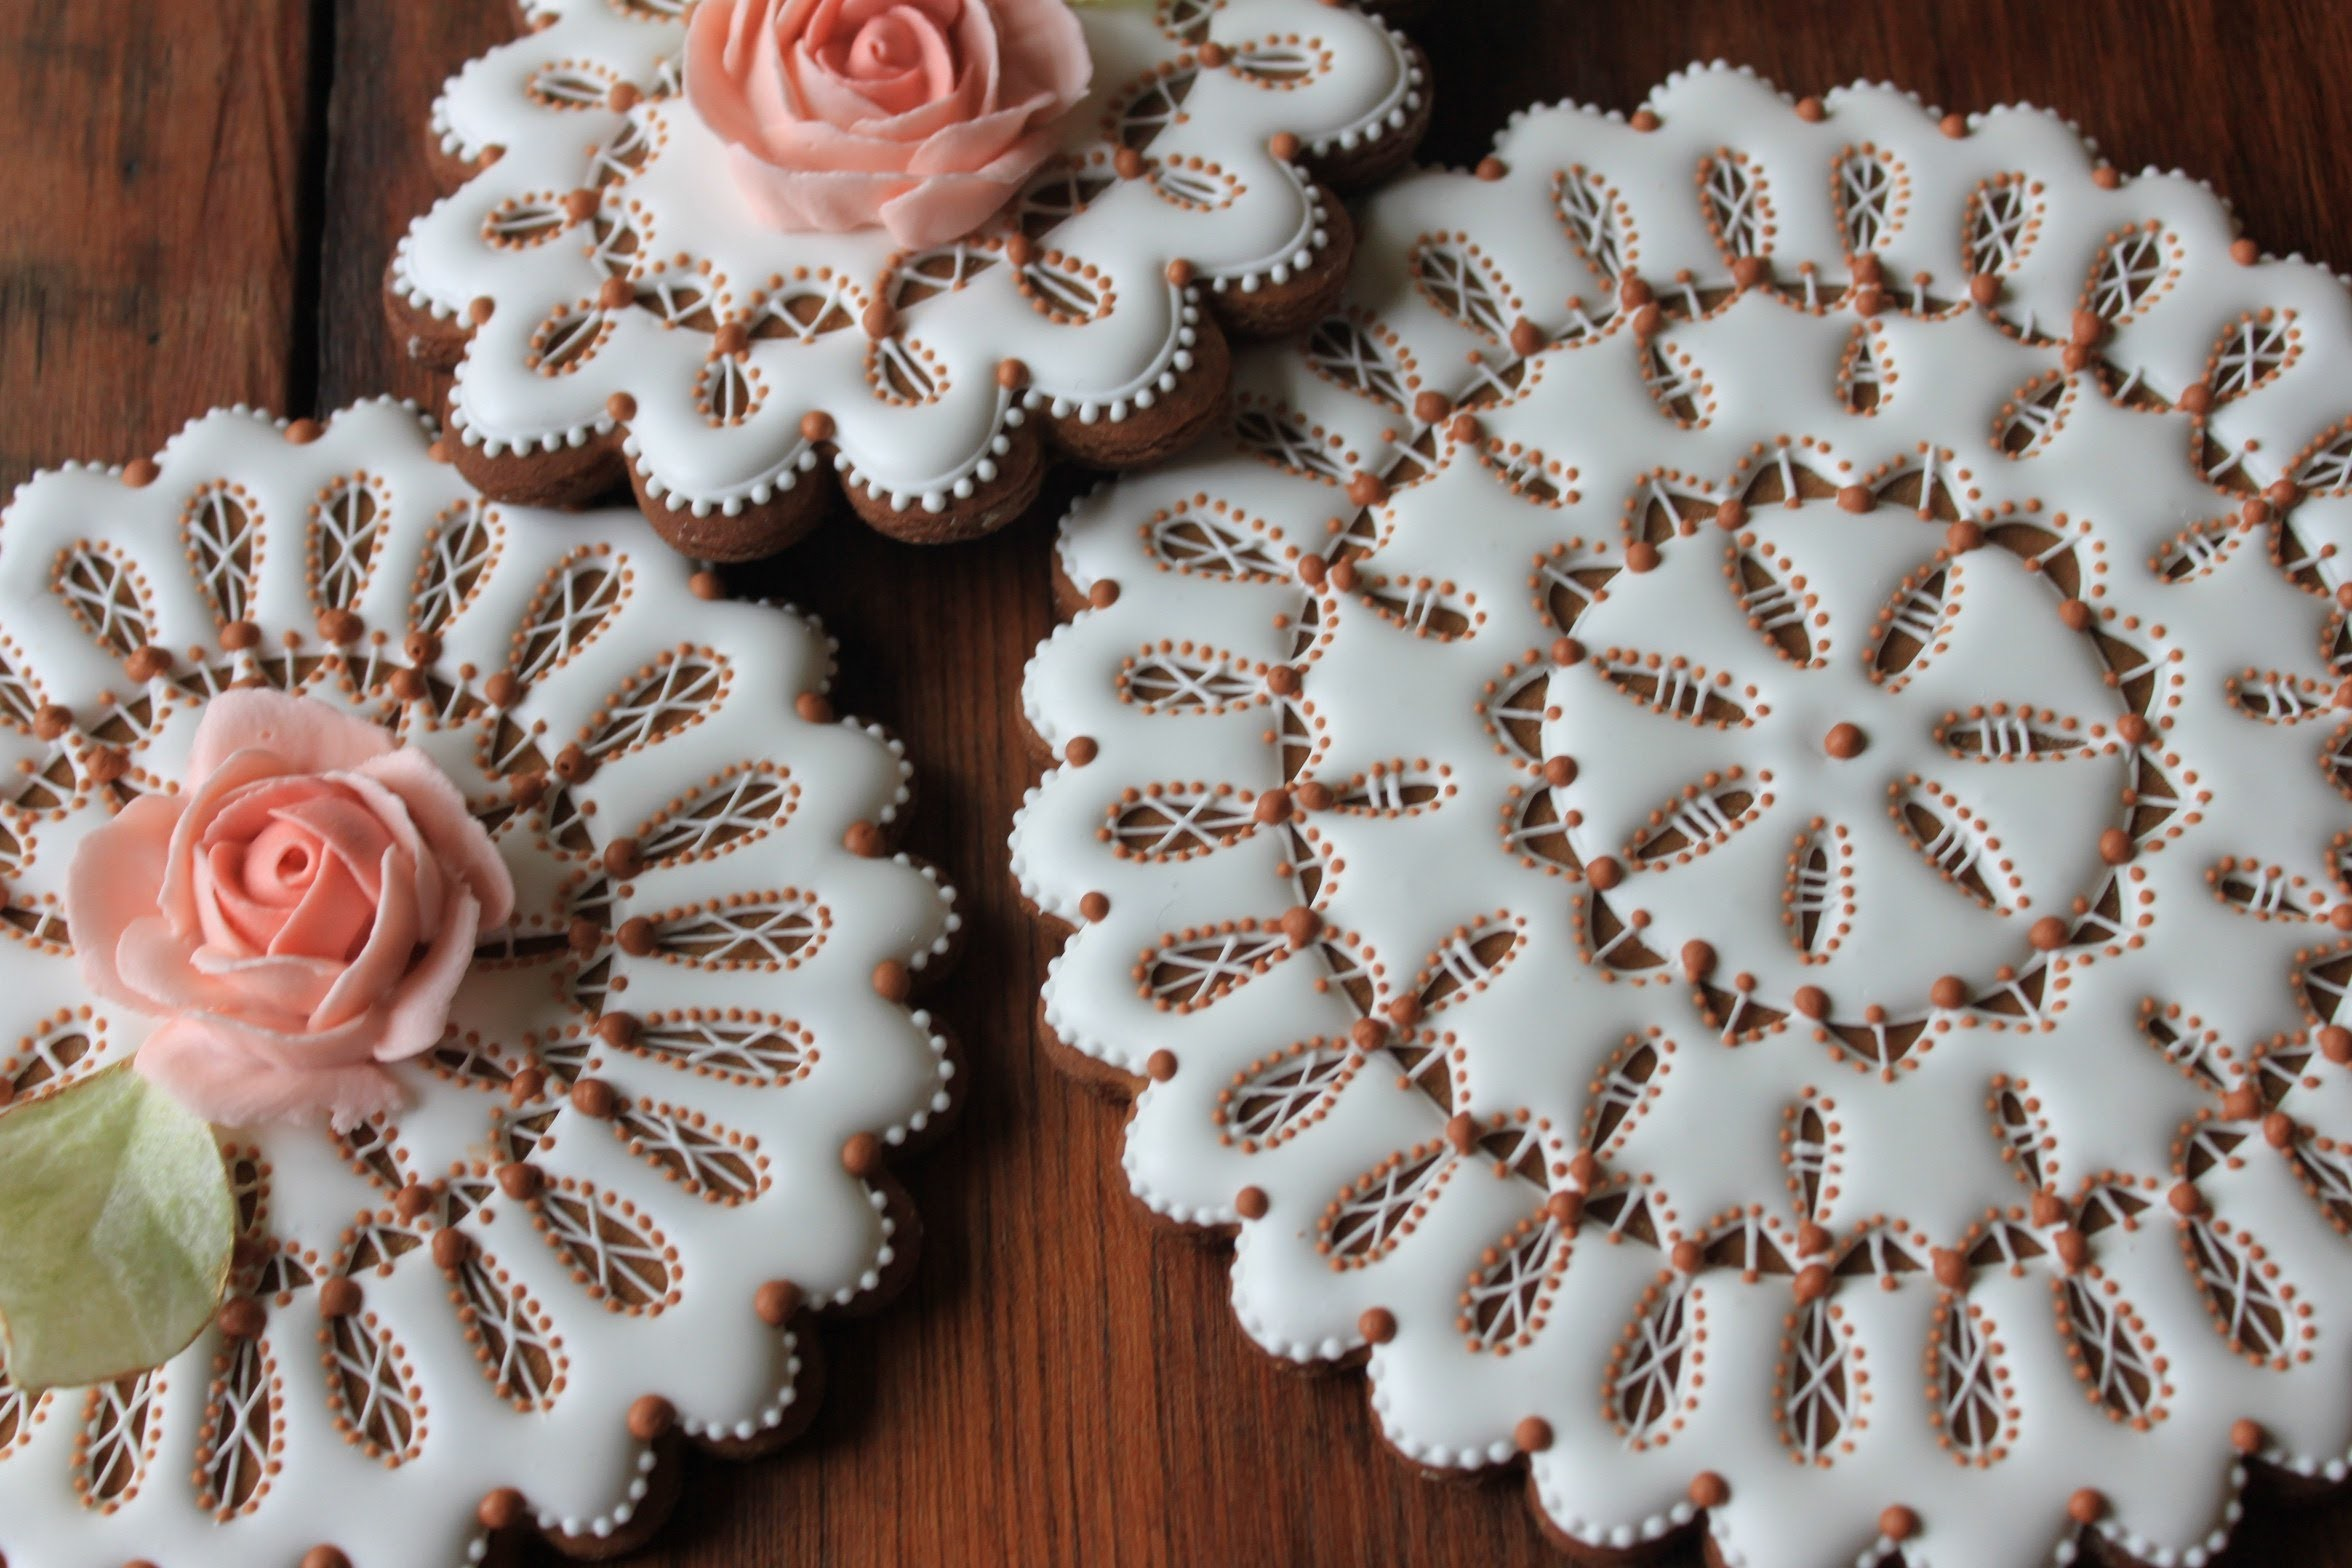 How to Make Eyelet Lace Doily Cookies (aka Part 1 of My 3-D Wedding Bouquets)